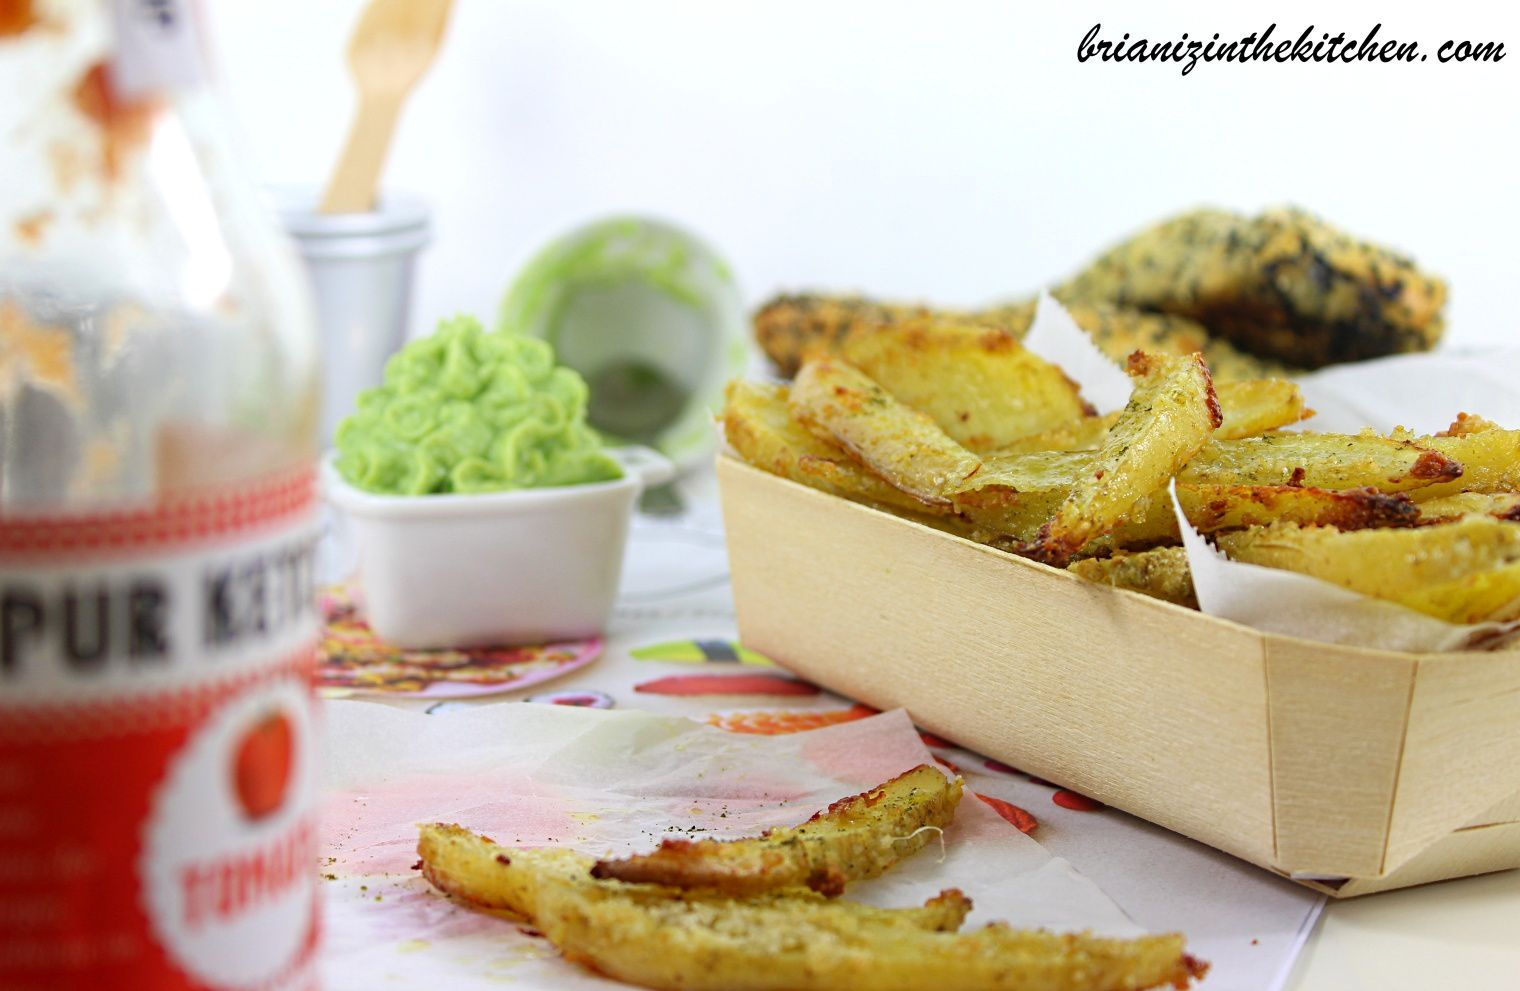 Frites au four ail parmesan persil light express brian iz in the kitchen - Quand repiquer le persil ...